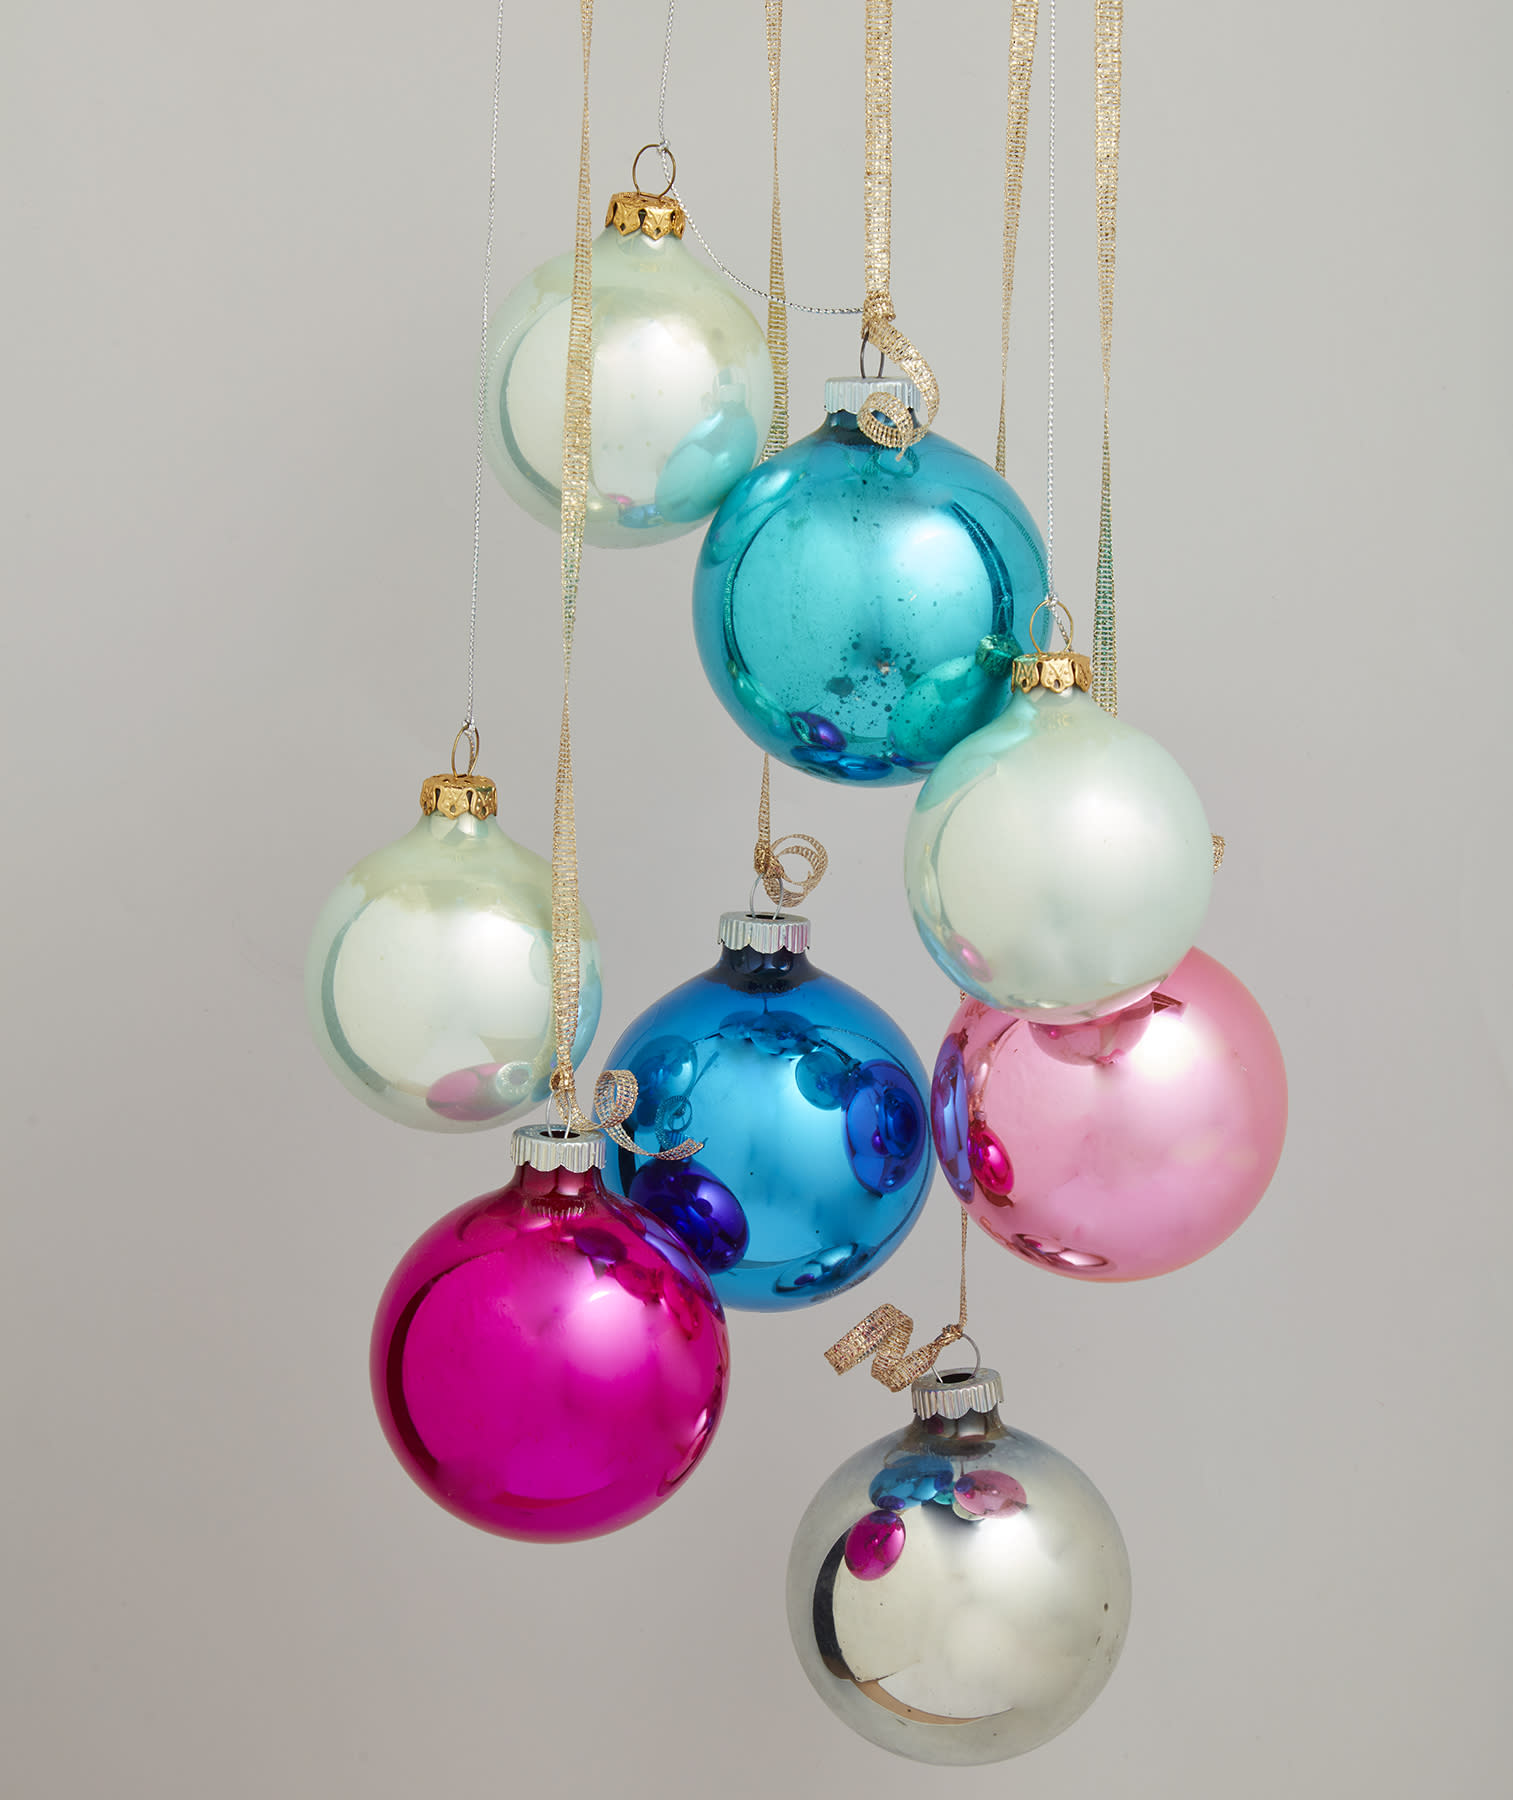 vintage christmas decorations with a modern twist - What Is The Day After Christmas Called